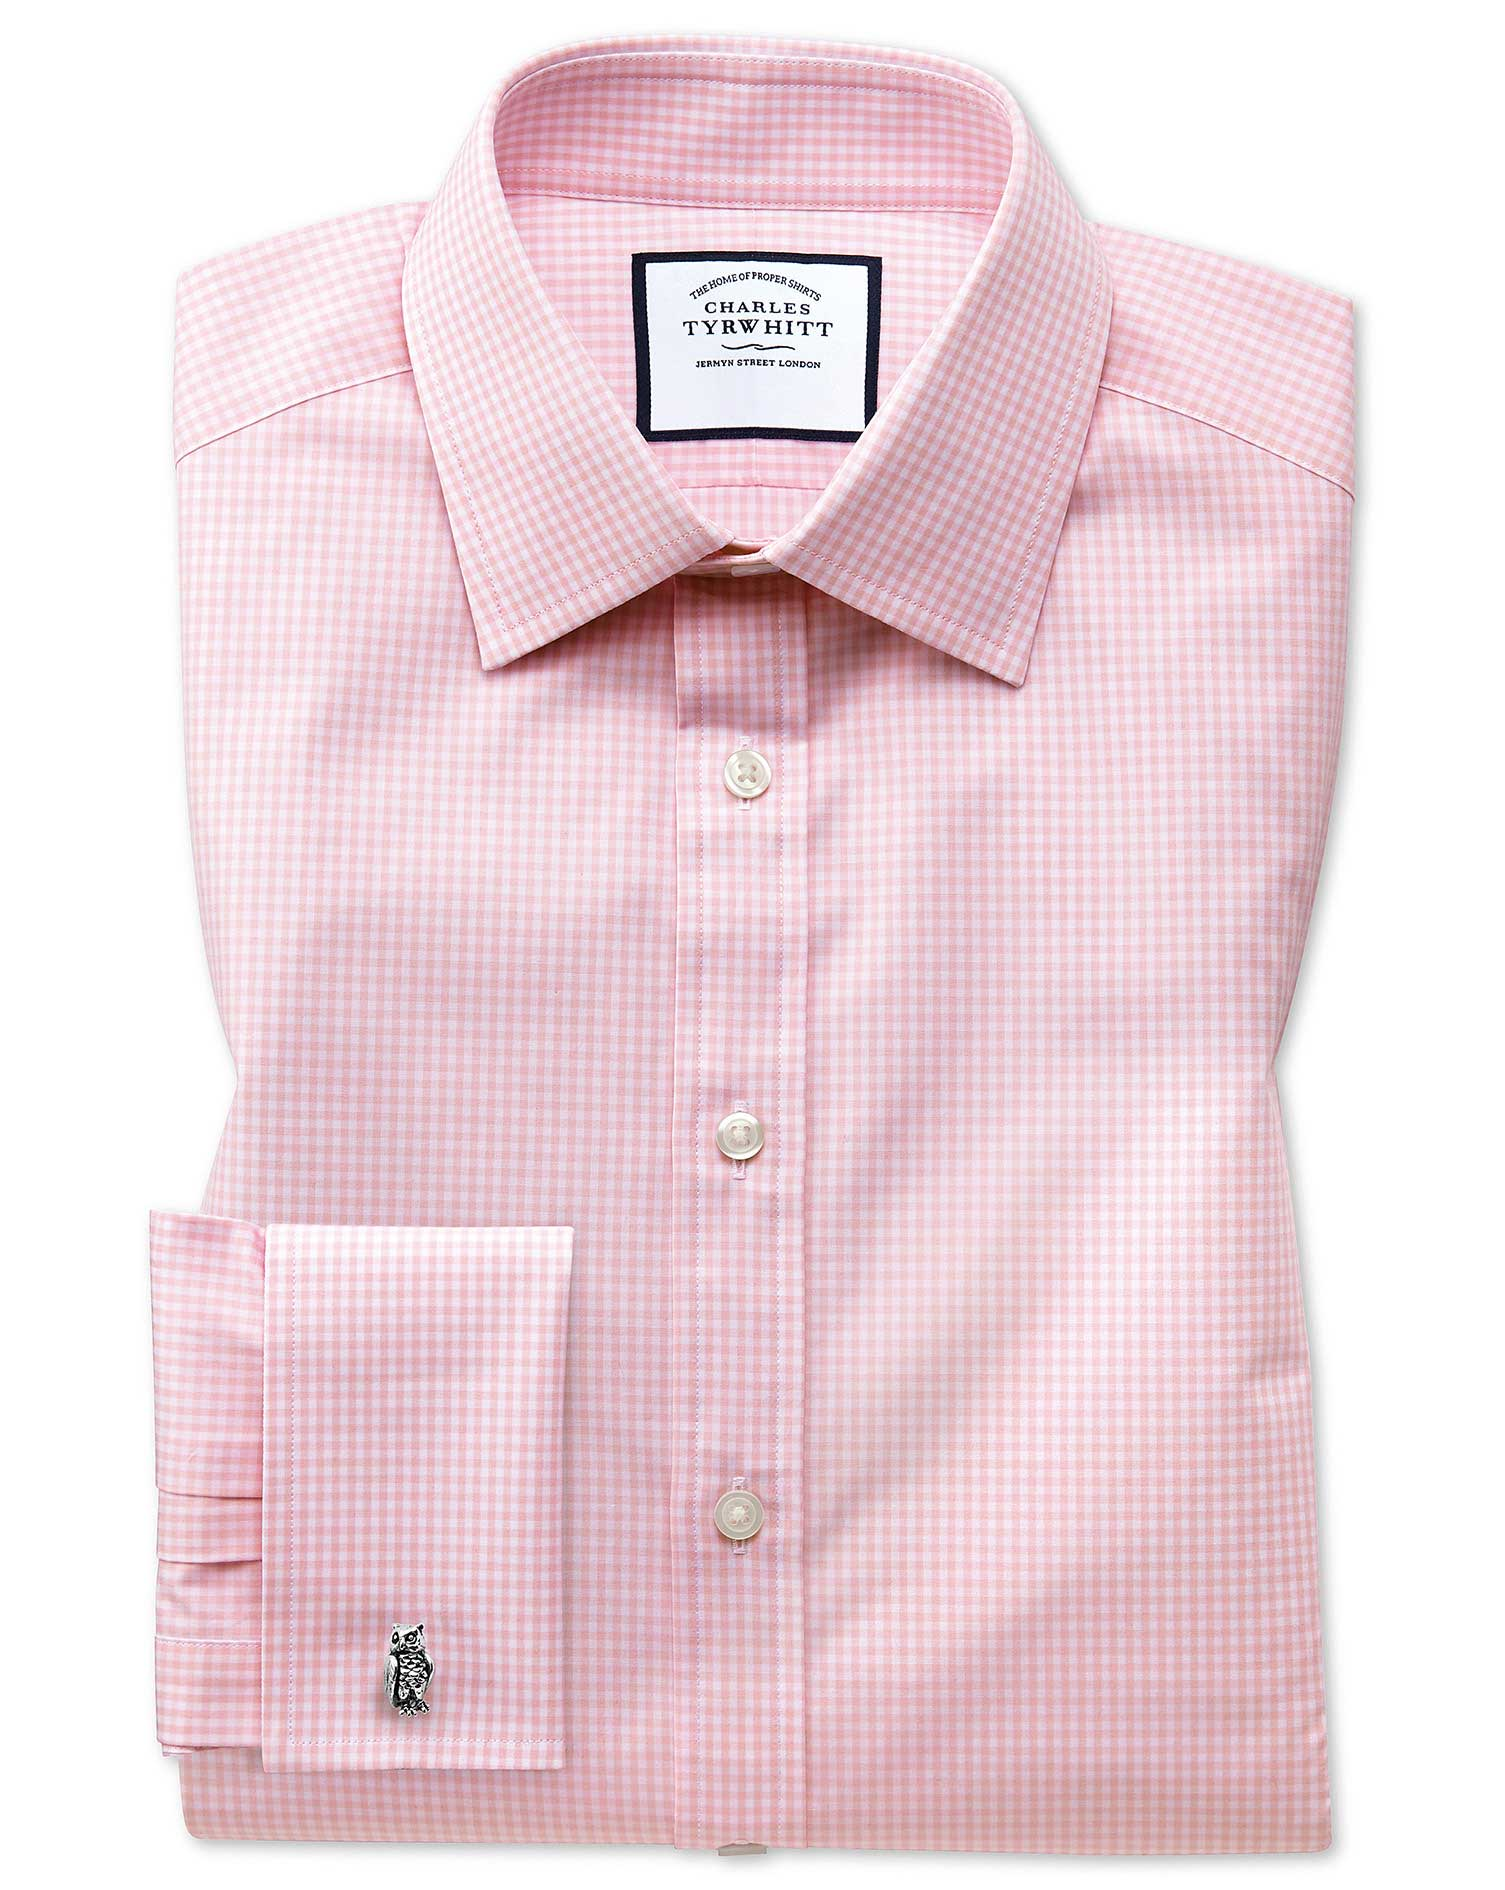 Slim Fit Small Gingham Light Pink Cotton Formal Shirt Double Cuff Size 16/34 by Charles Tyrwhitt